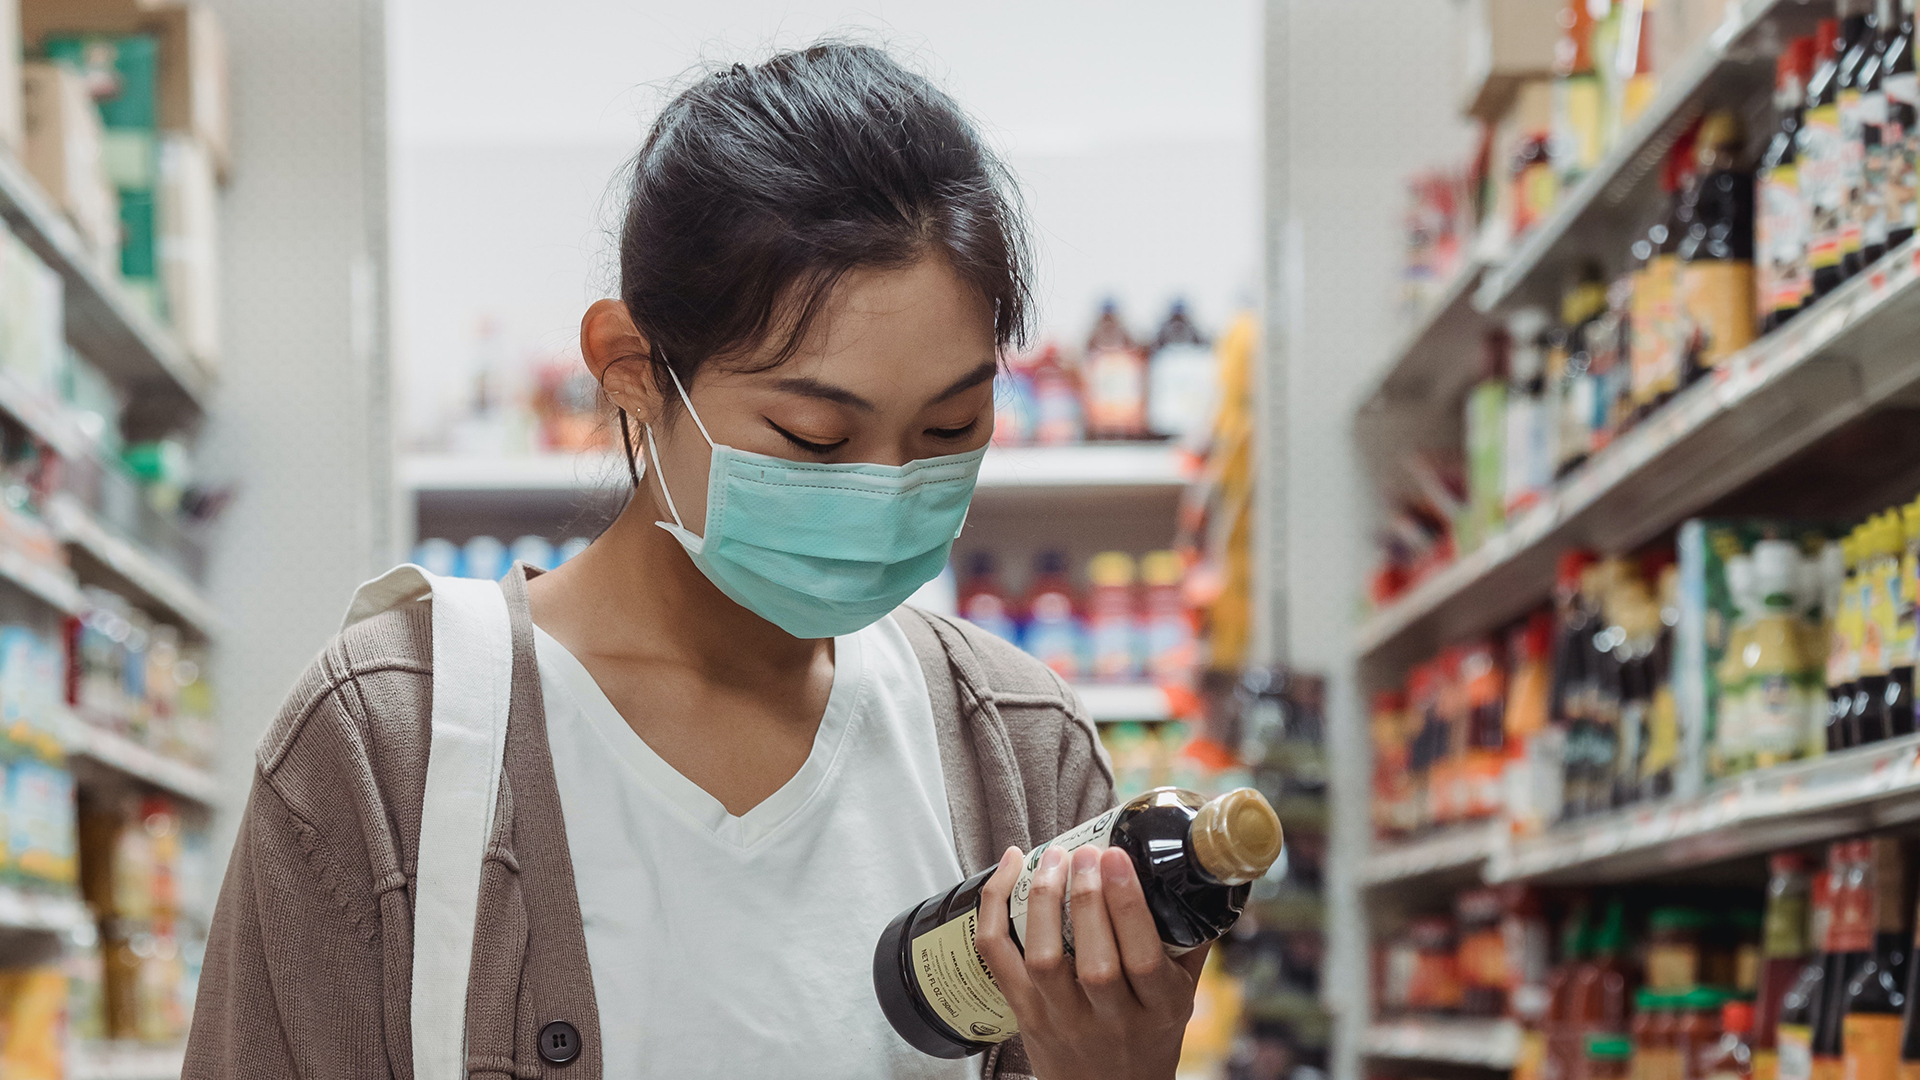 Doctors, Public Health Experts Show Importance Of Consumer-friendly Food, Beverage Warning Labels